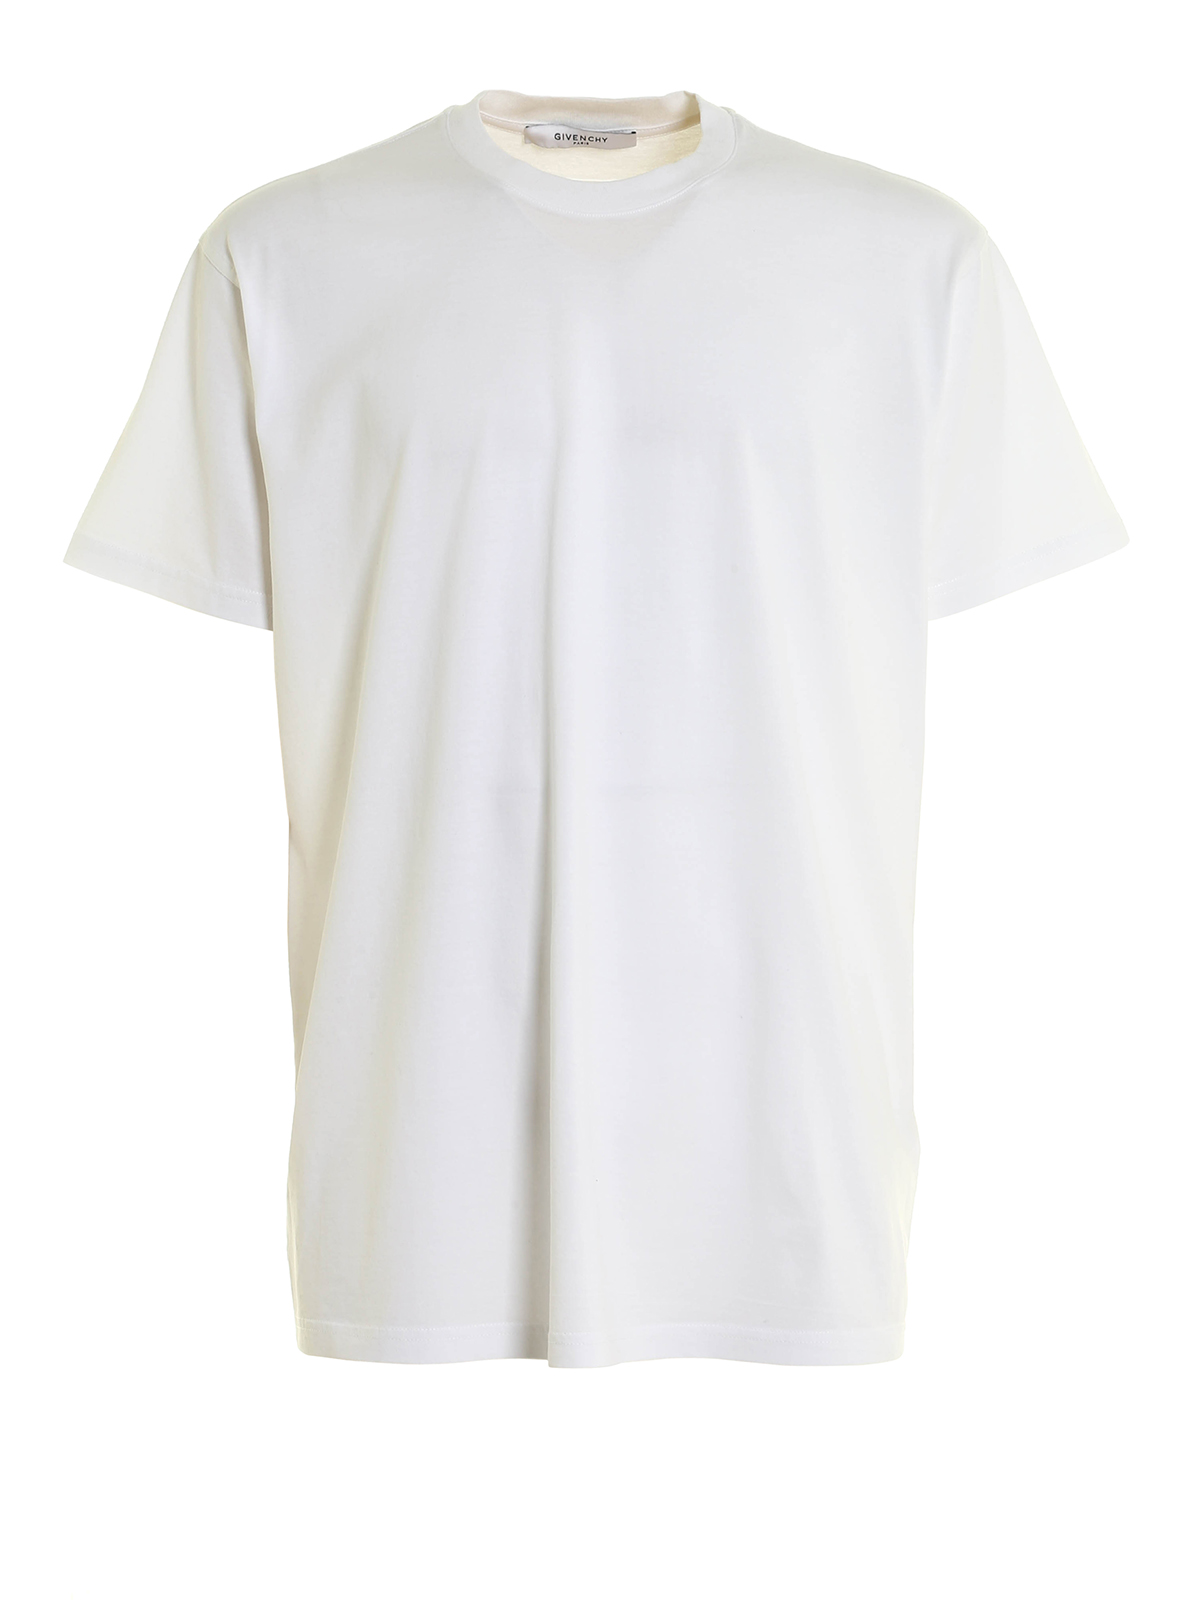 Silk embroidery cotton t shirt by givenchy t shirts for Cotton silk tee shirts